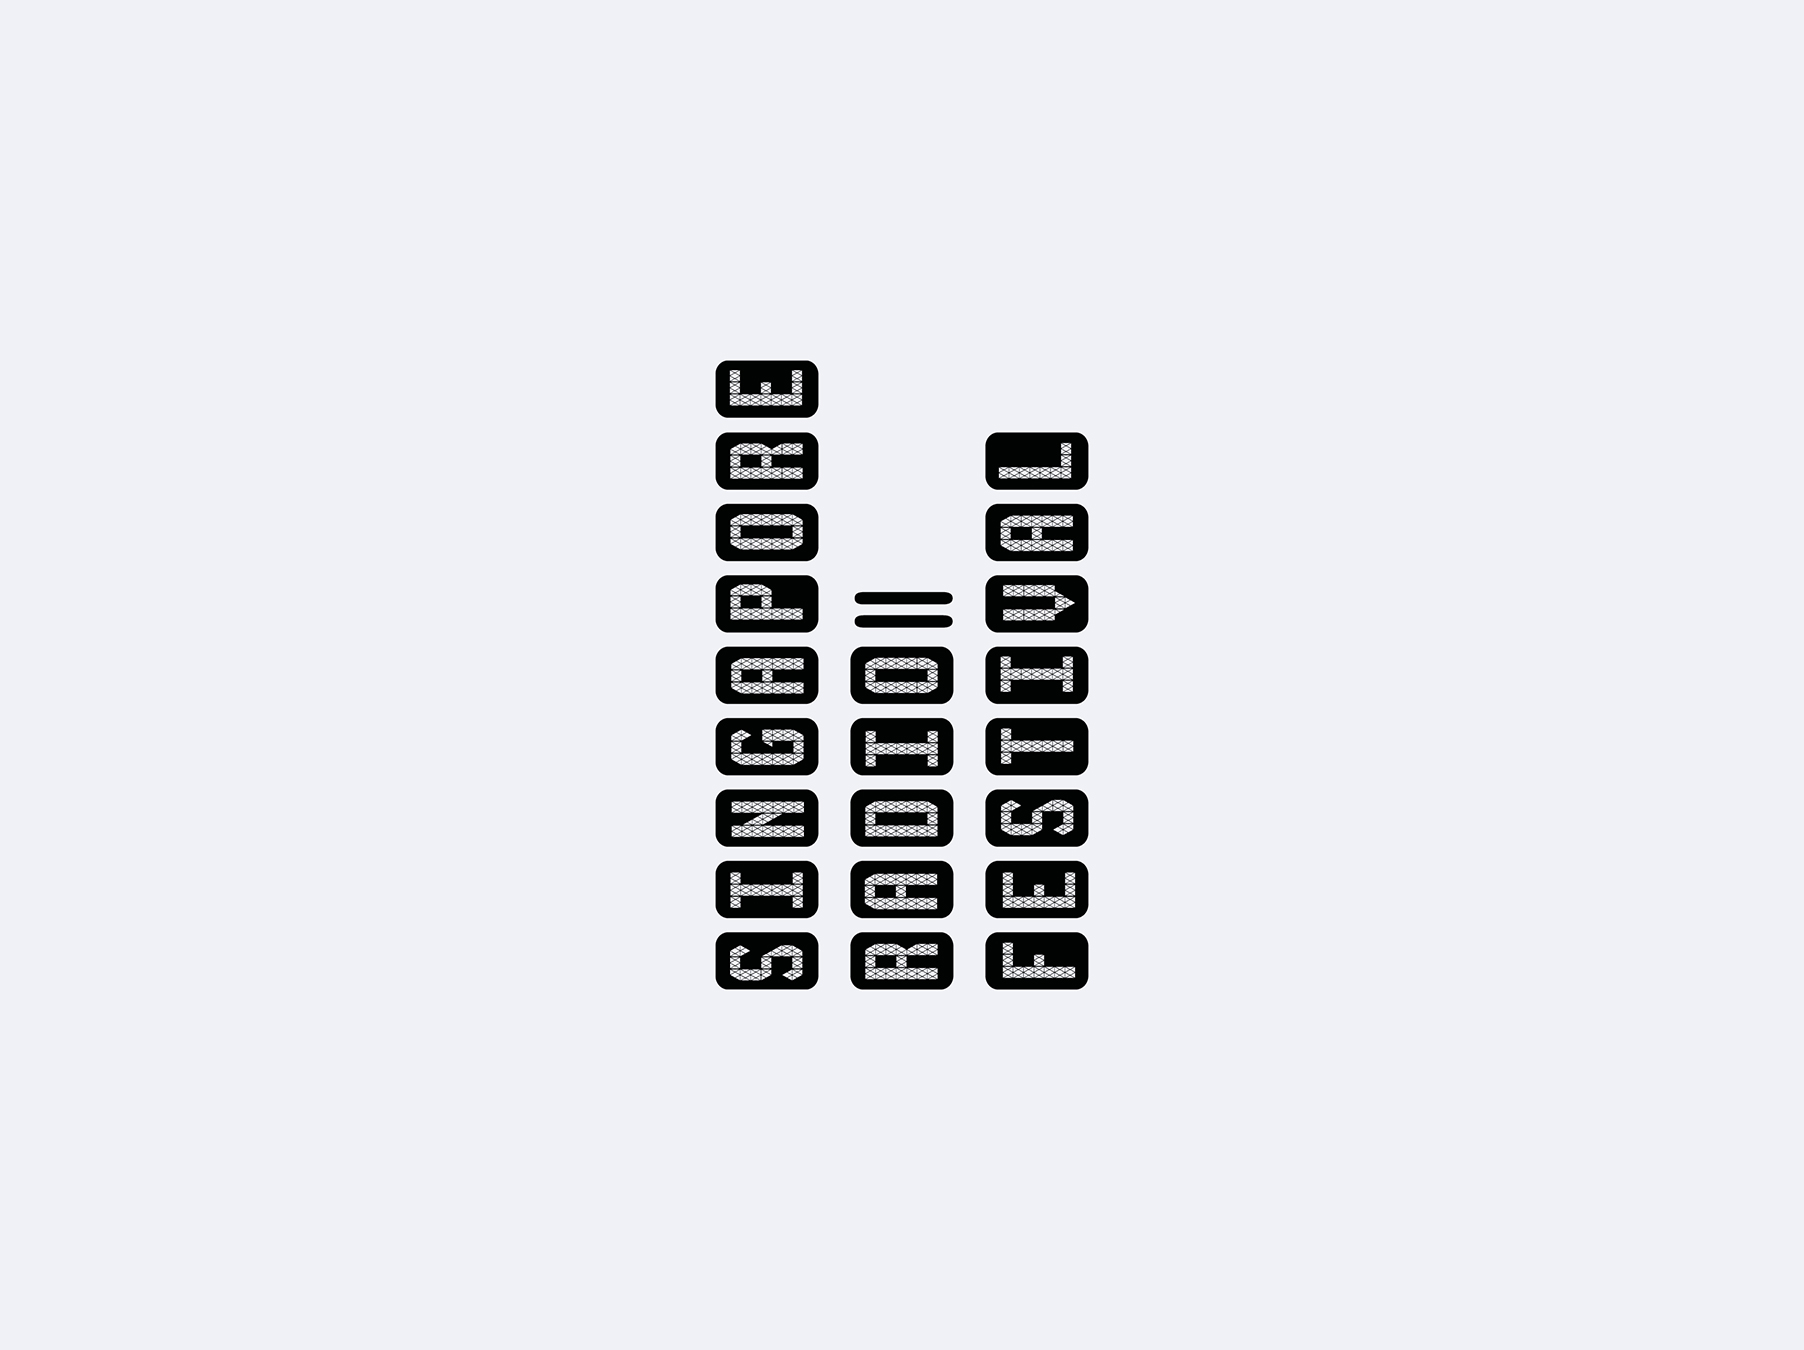 Marques-Logotypes_1804x1350_40_opt.jpg